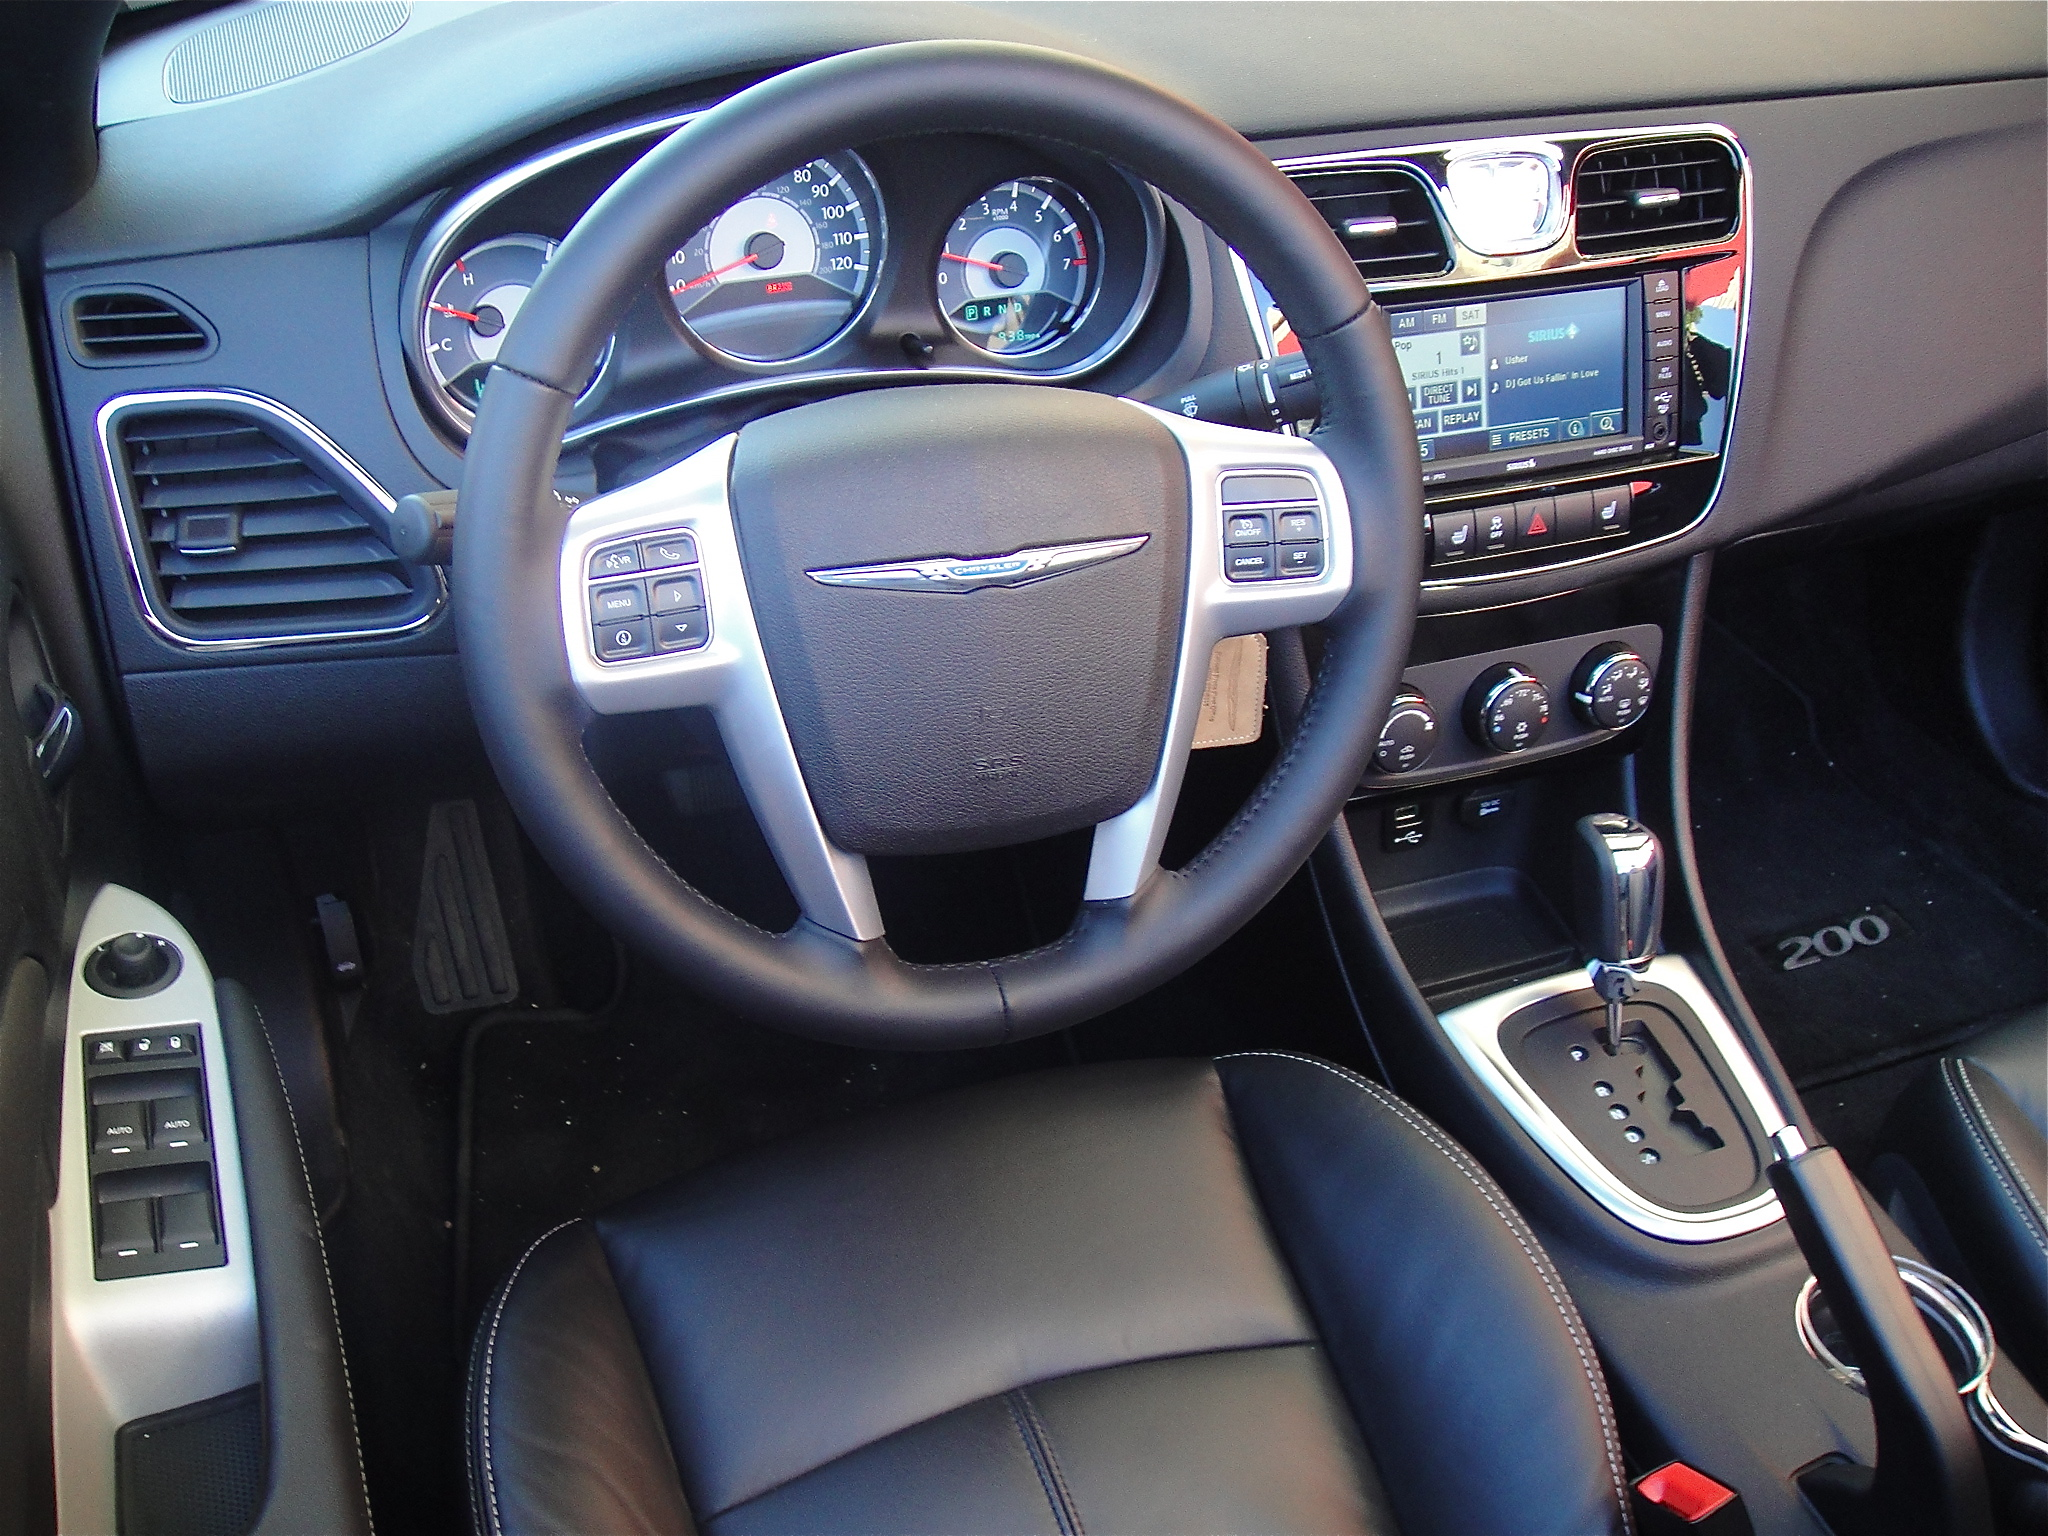 Dsc on 2012 Chrysler 200 Interior